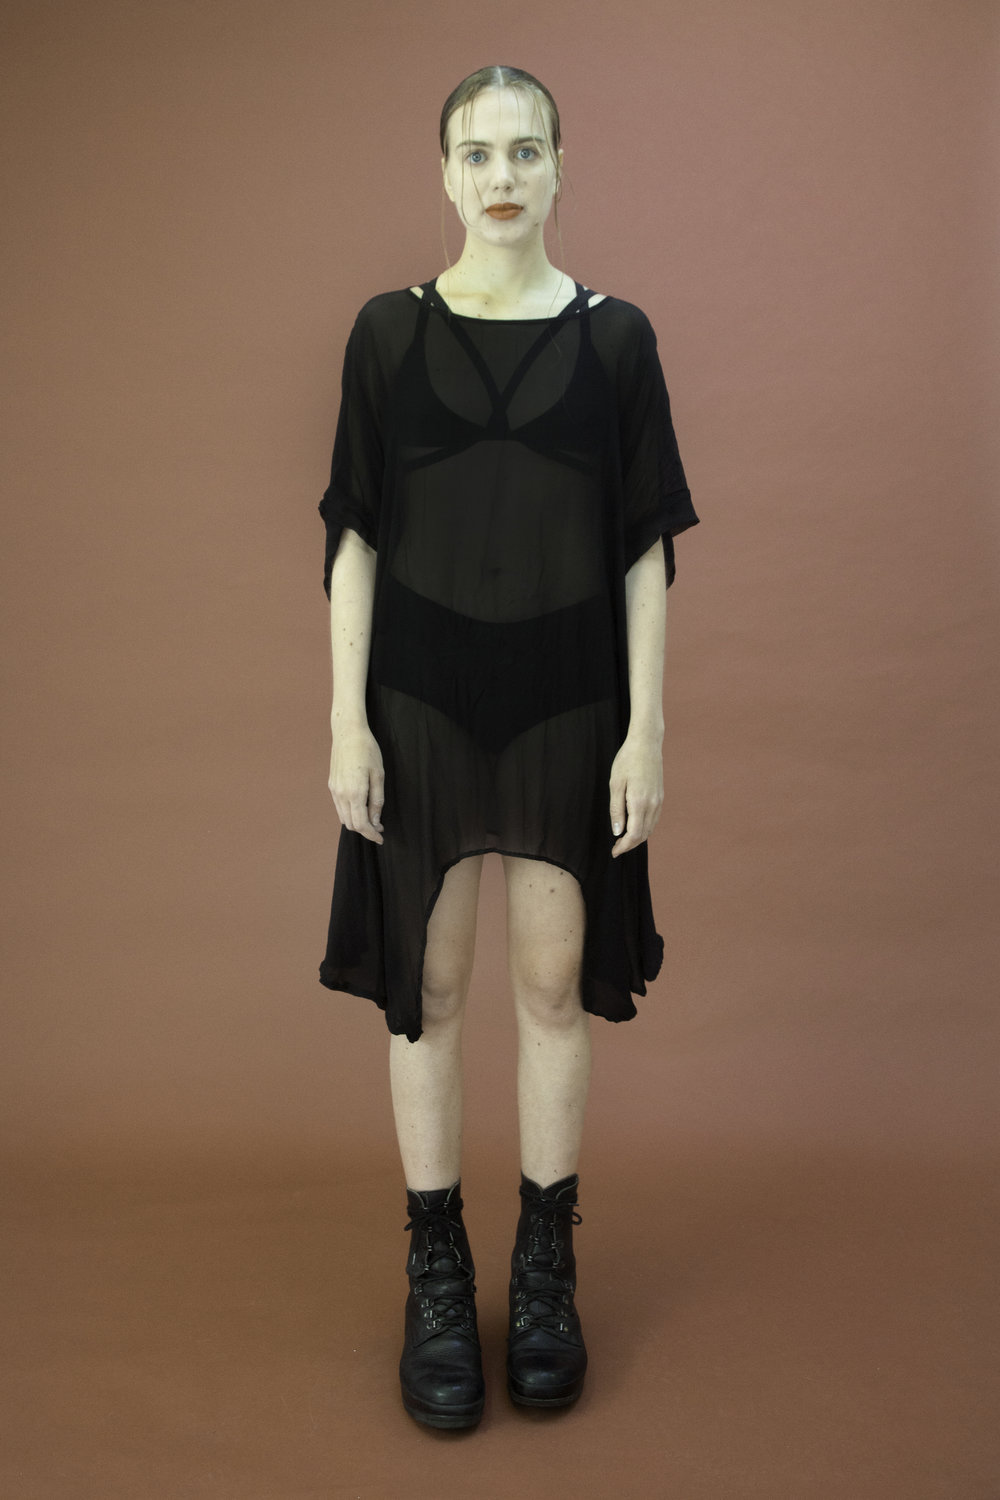 crow-dress-silk-jason-lingard-agoraphobia-collective